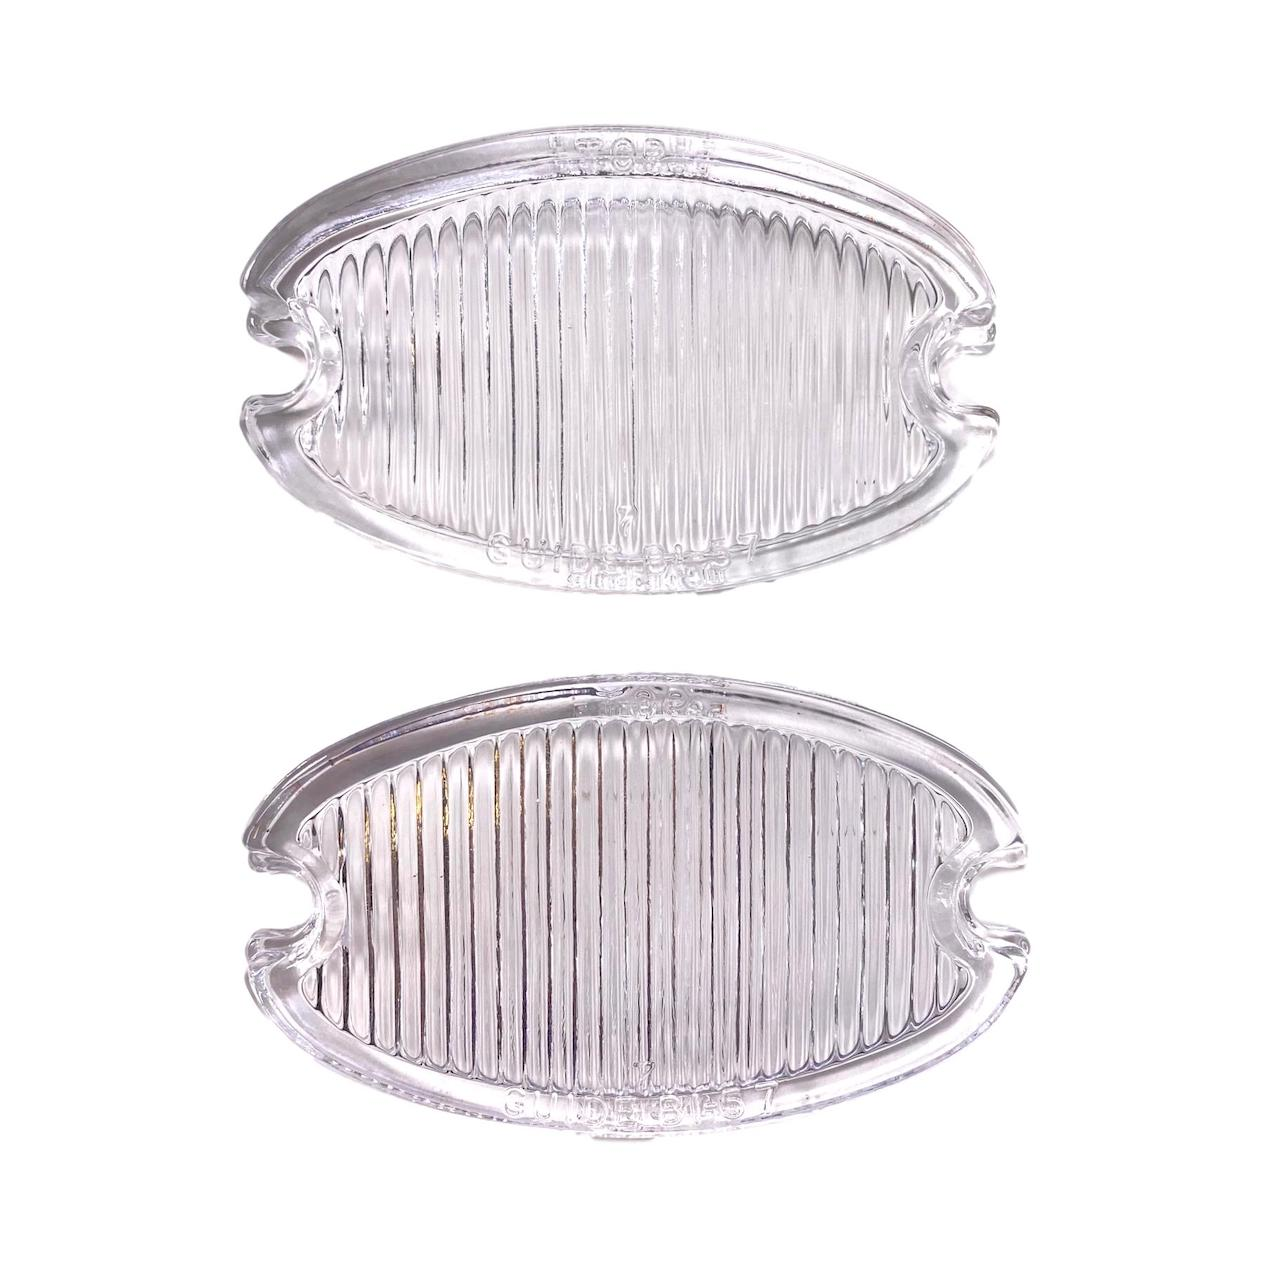 1957 Chevy Clear Glass Back-Up Lenses